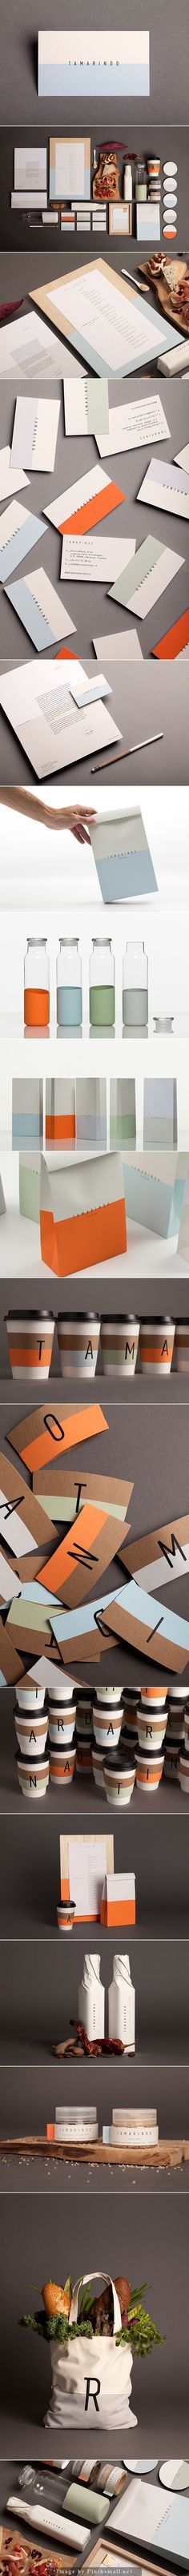 Tasty Tamarindo identity, packaging, branding curated by Packaging Diva PD